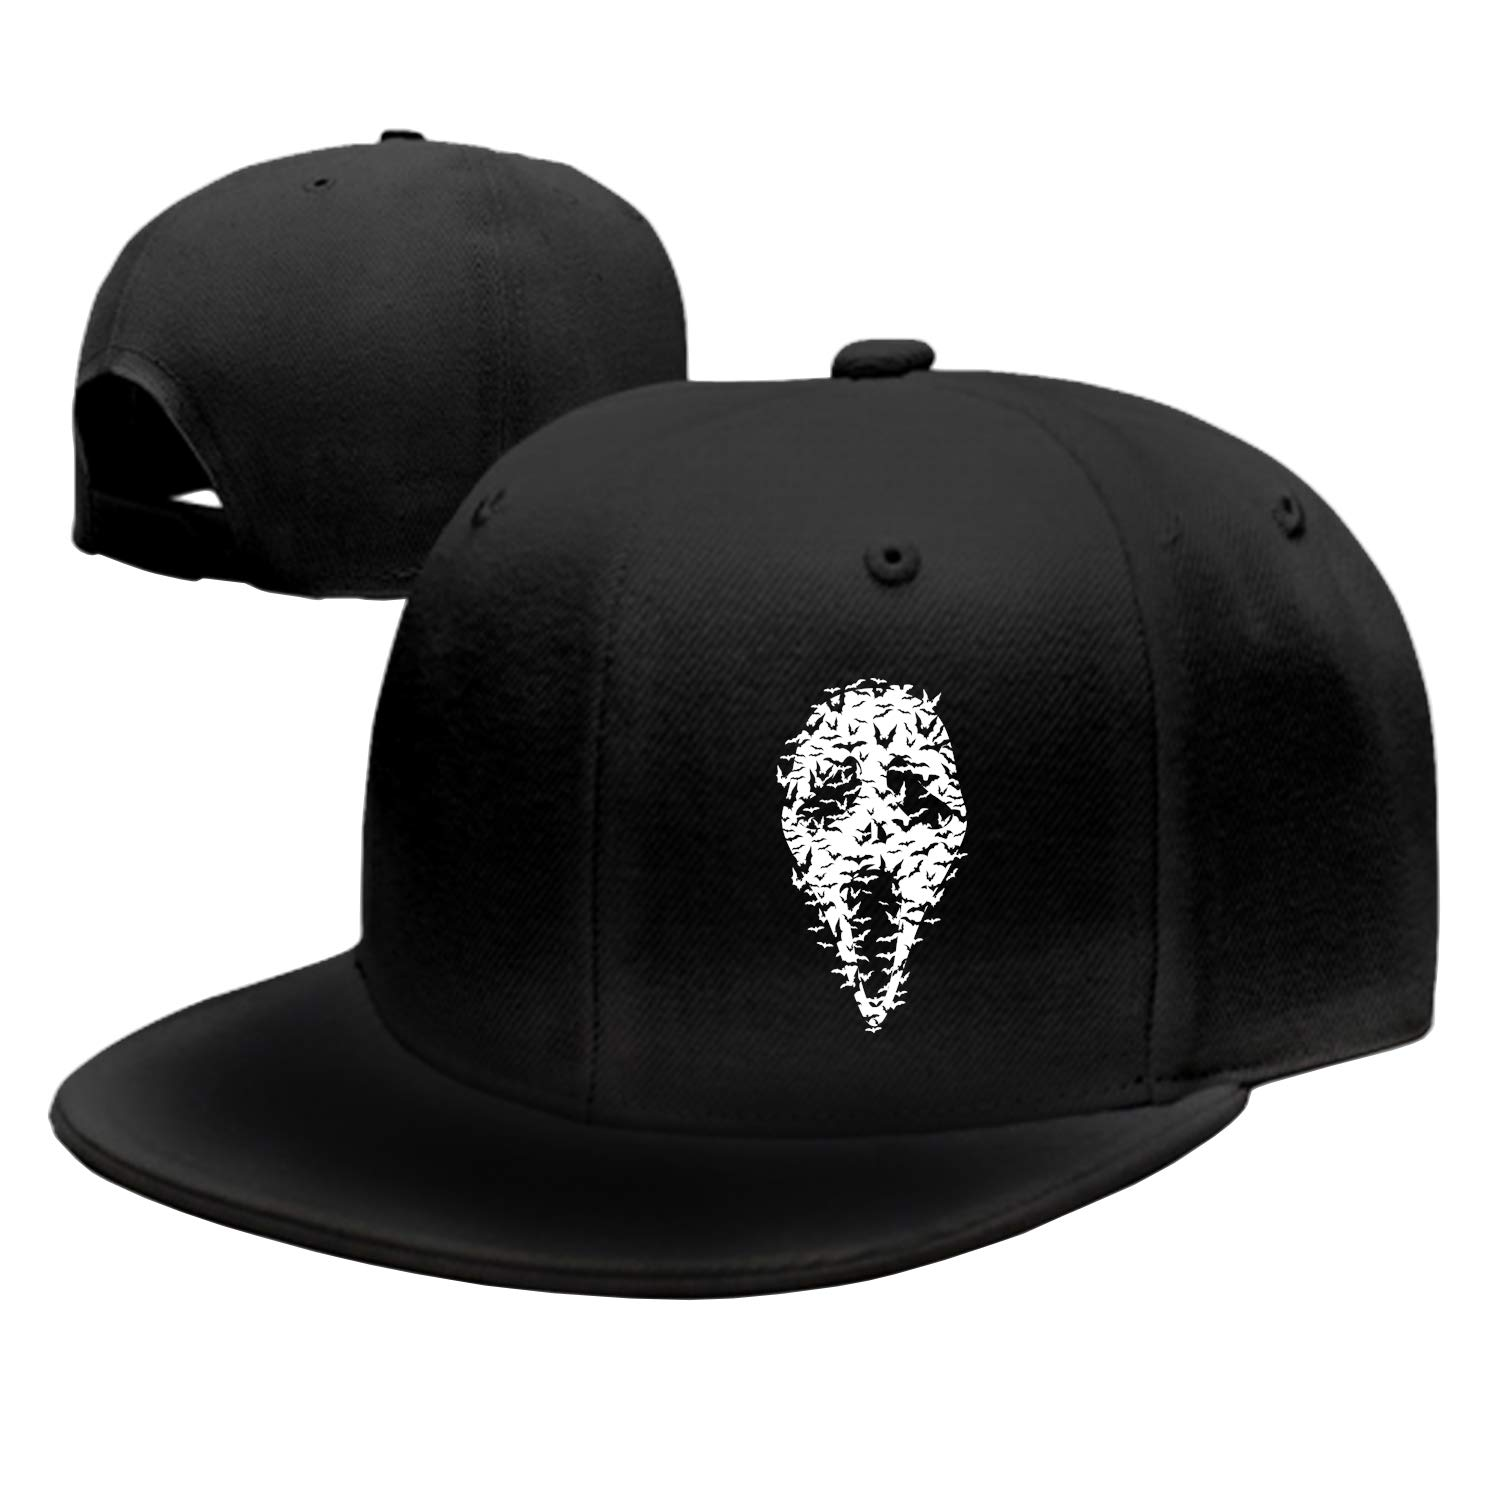 Peaked hat Ghost Face Bats Adjustable Sandwich Baseball Cap Cotton Snapback